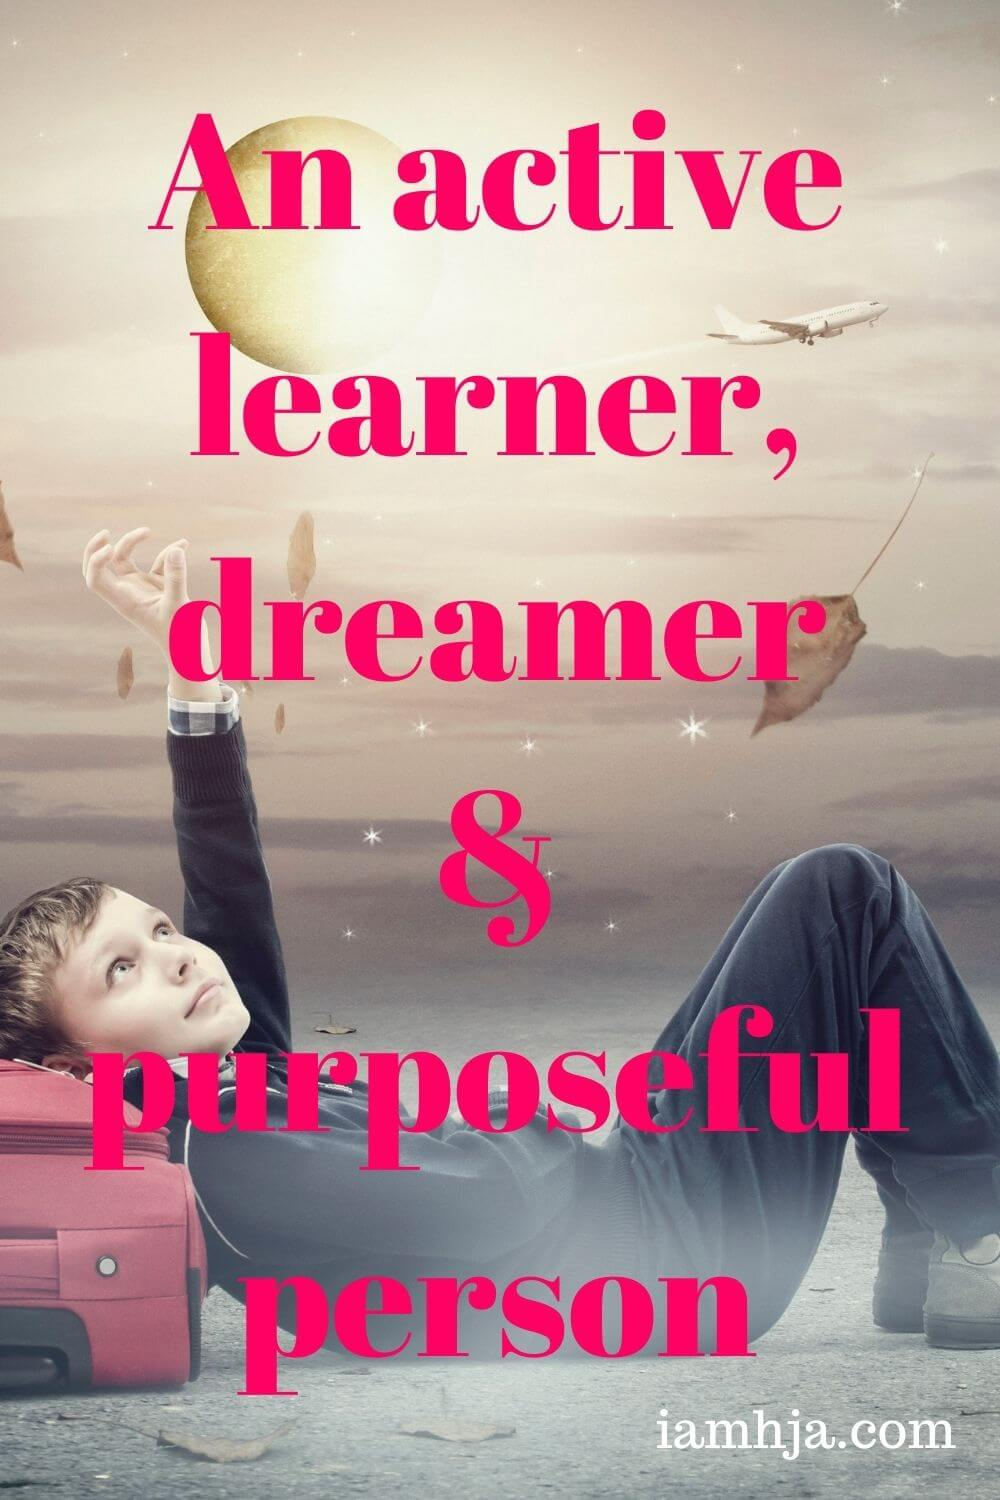 An active learner, dreamer & purposeful person